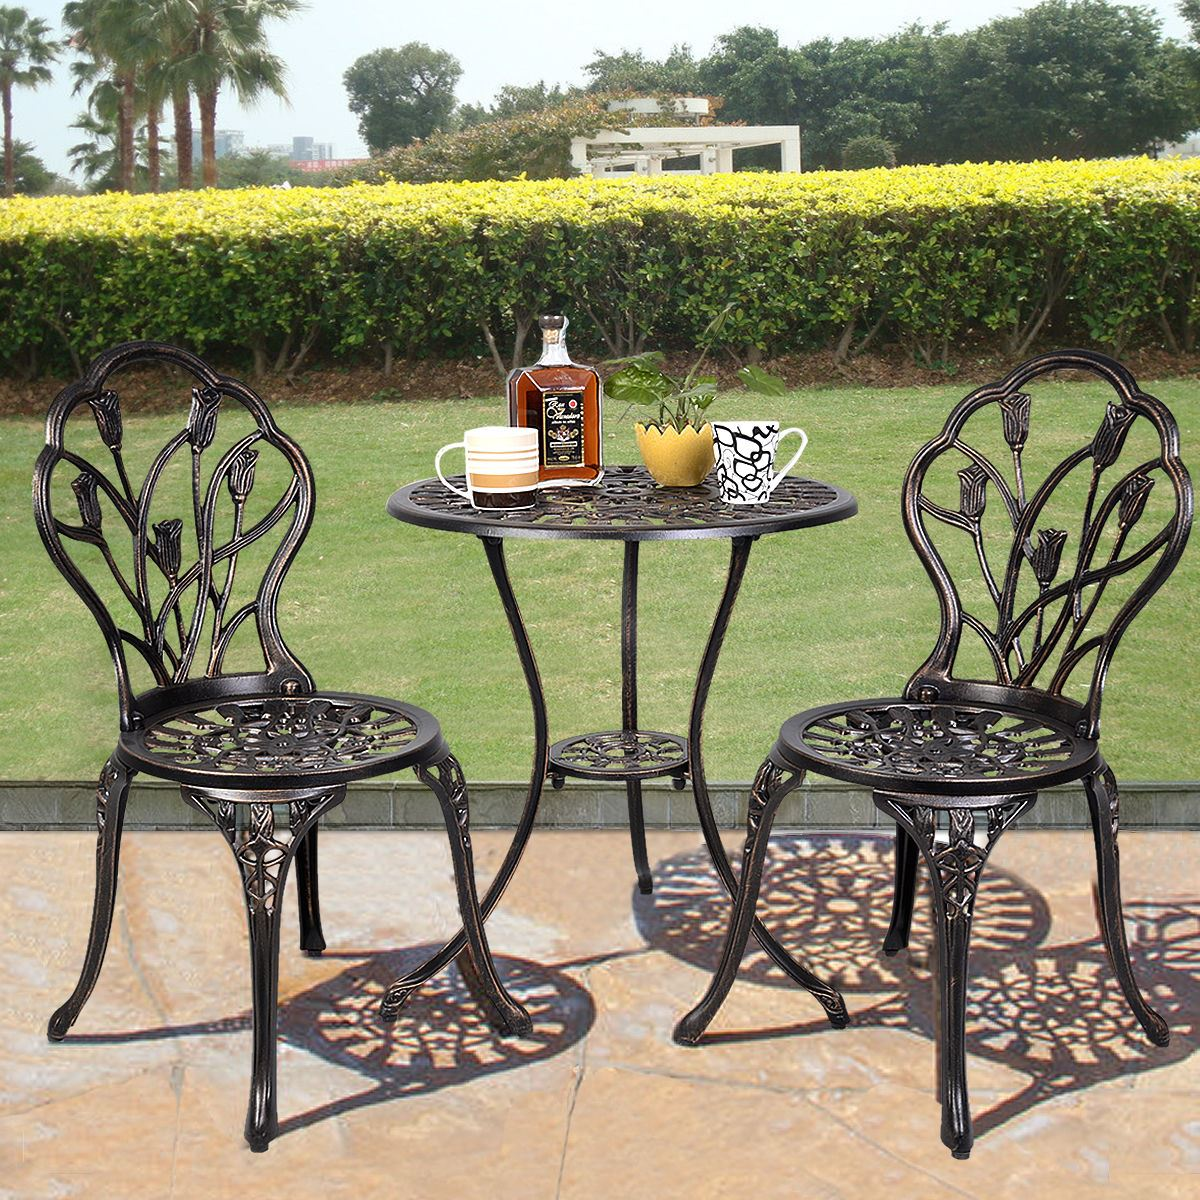 - Outdoor Patio Bistro Set Tulip Design In Antique Copper - Walmart.com